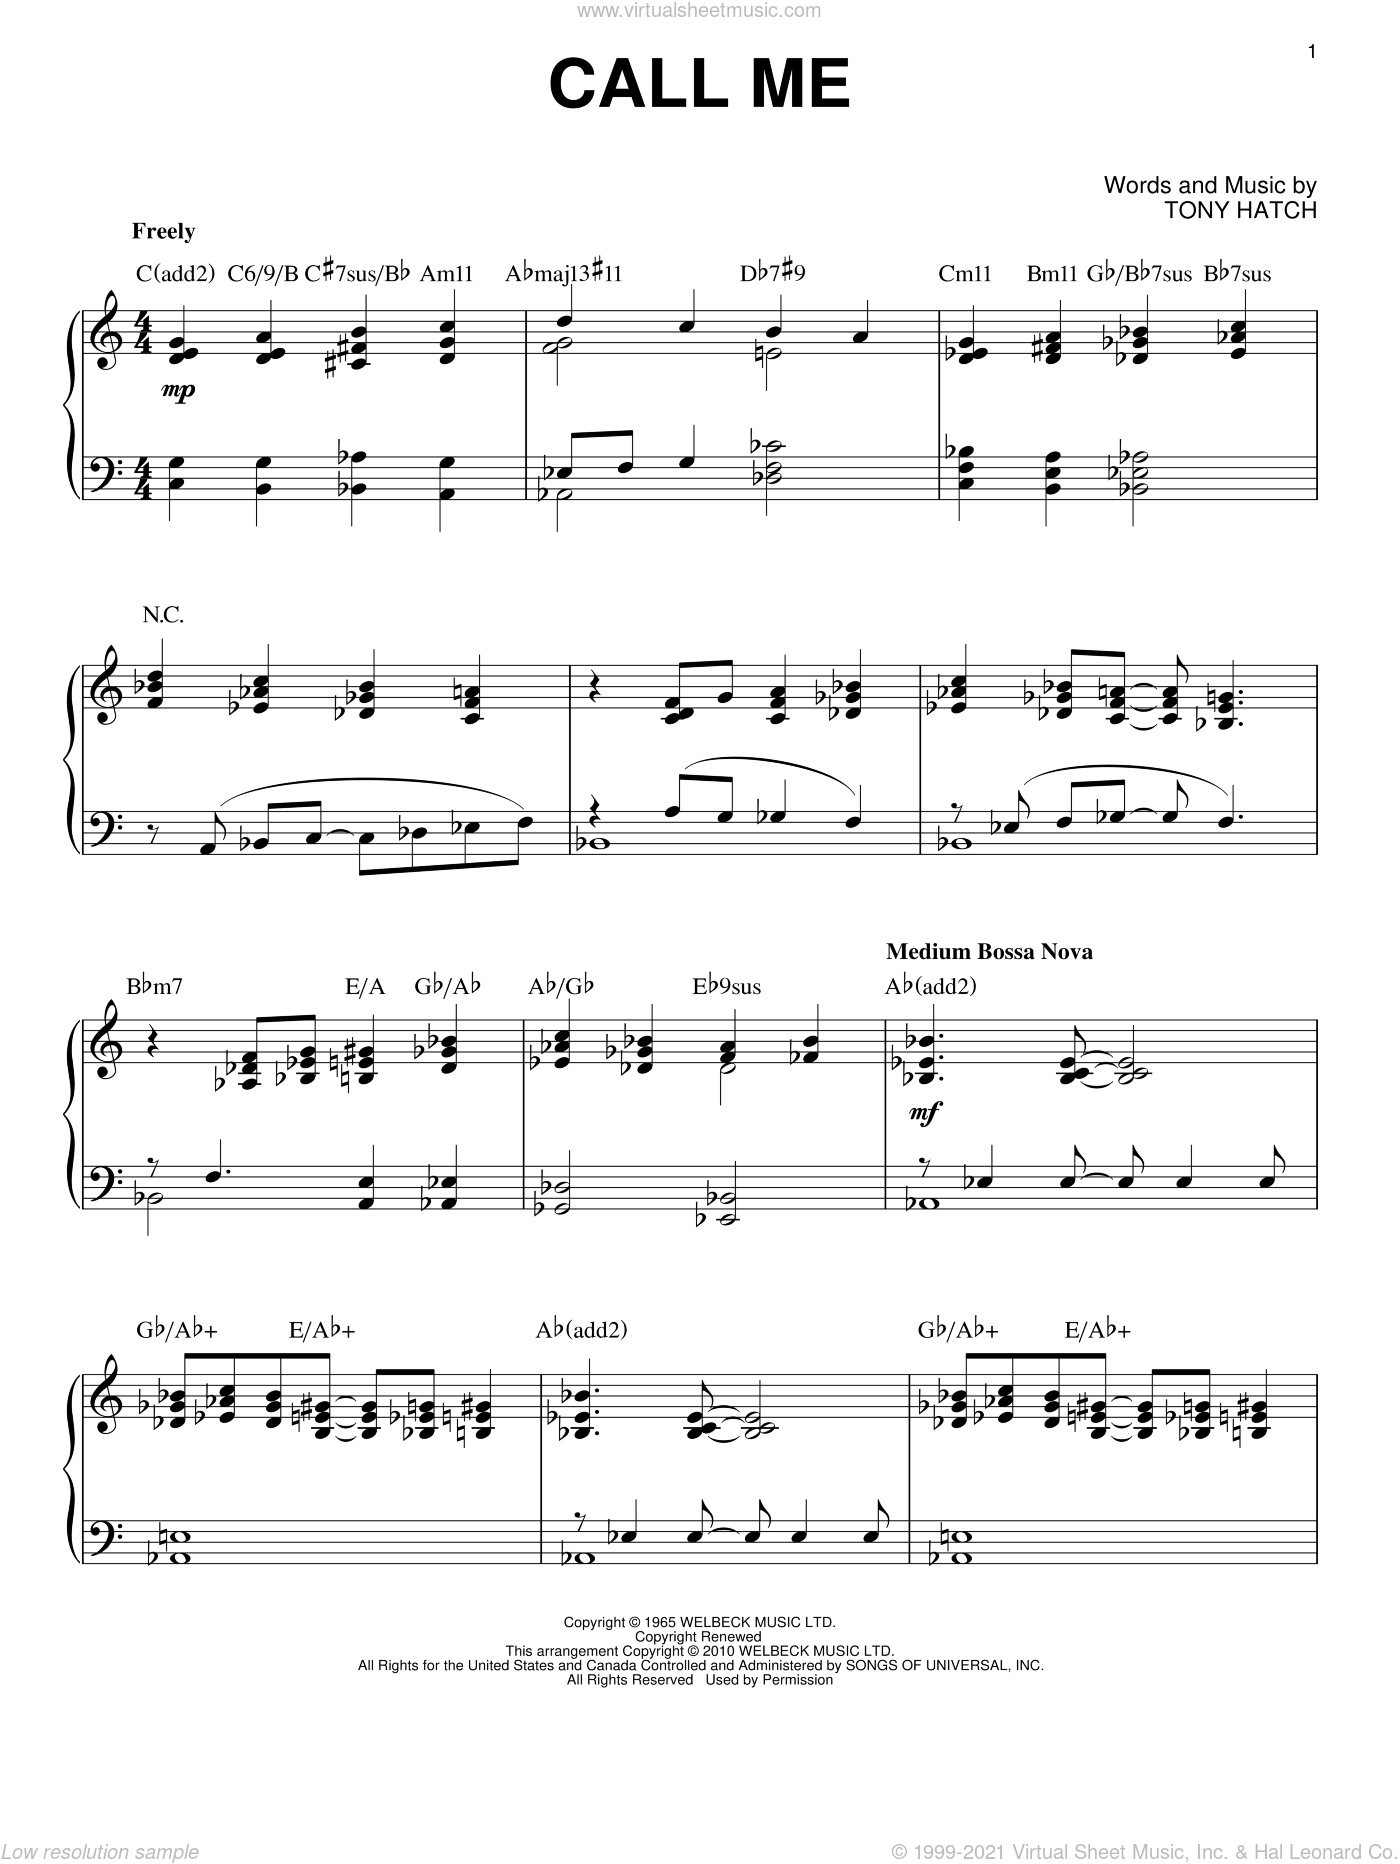 Call Me sheet music for piano solo by Tony Hatch, intermediate skill level